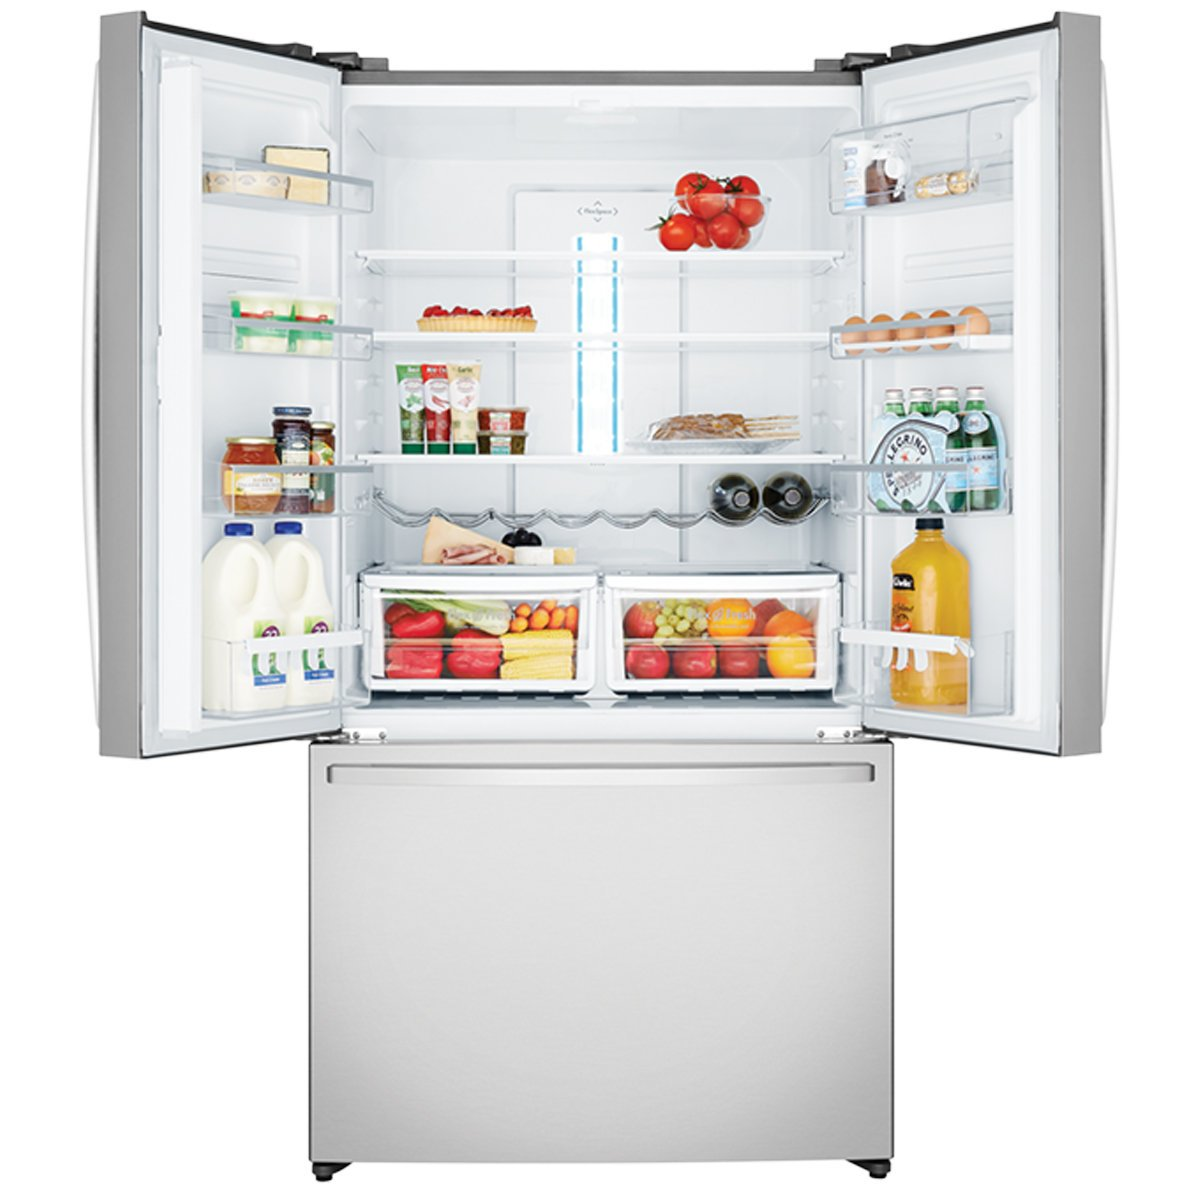 Westinghouse Whe6000sa 605l French Door Fridge Appliances Online Block Diagram For Temperature Control In A Refrigerator